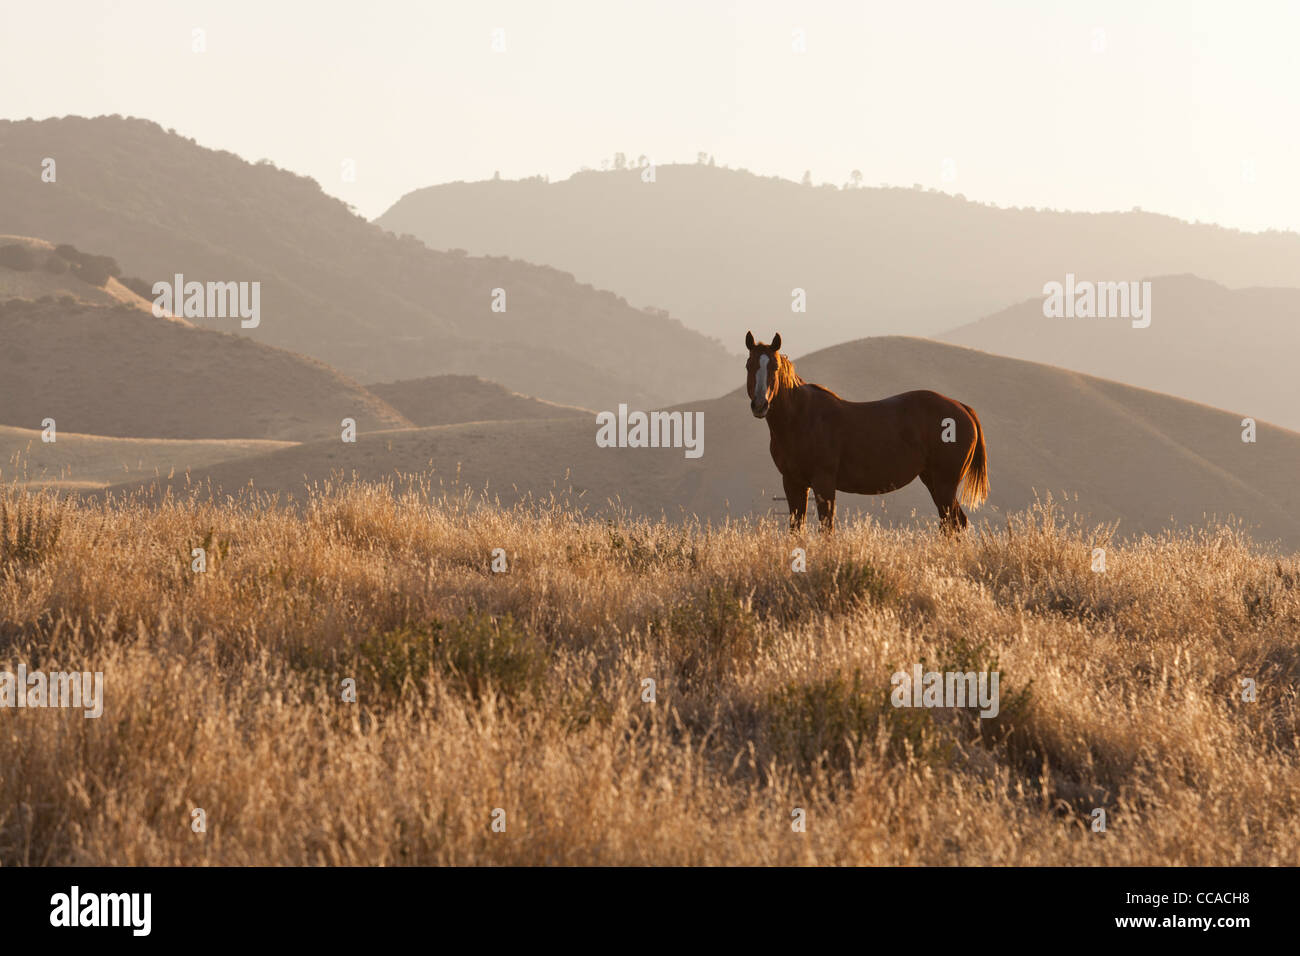 Wild horse standing on hill - Stock Image